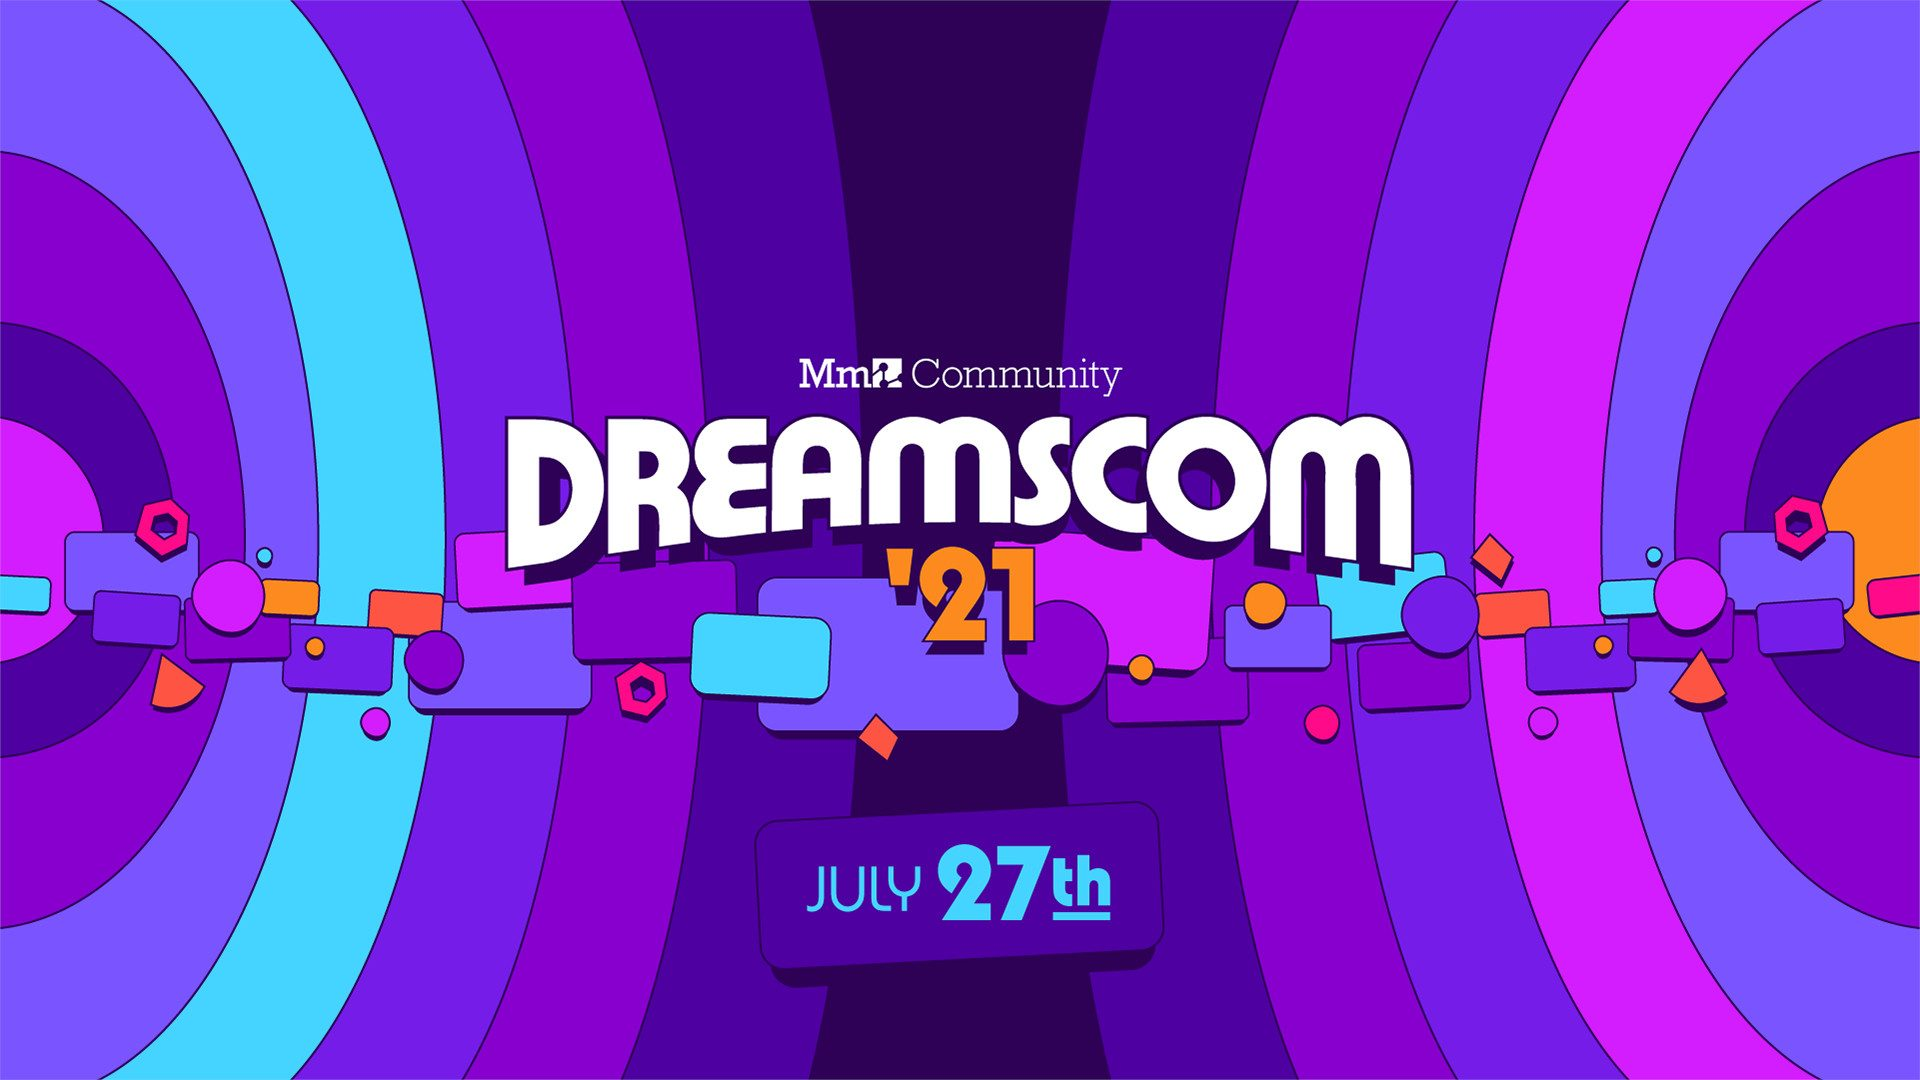 13-dreamscom-booths-that-captured-what-is-doable-at-the-group-driven-goals-expo